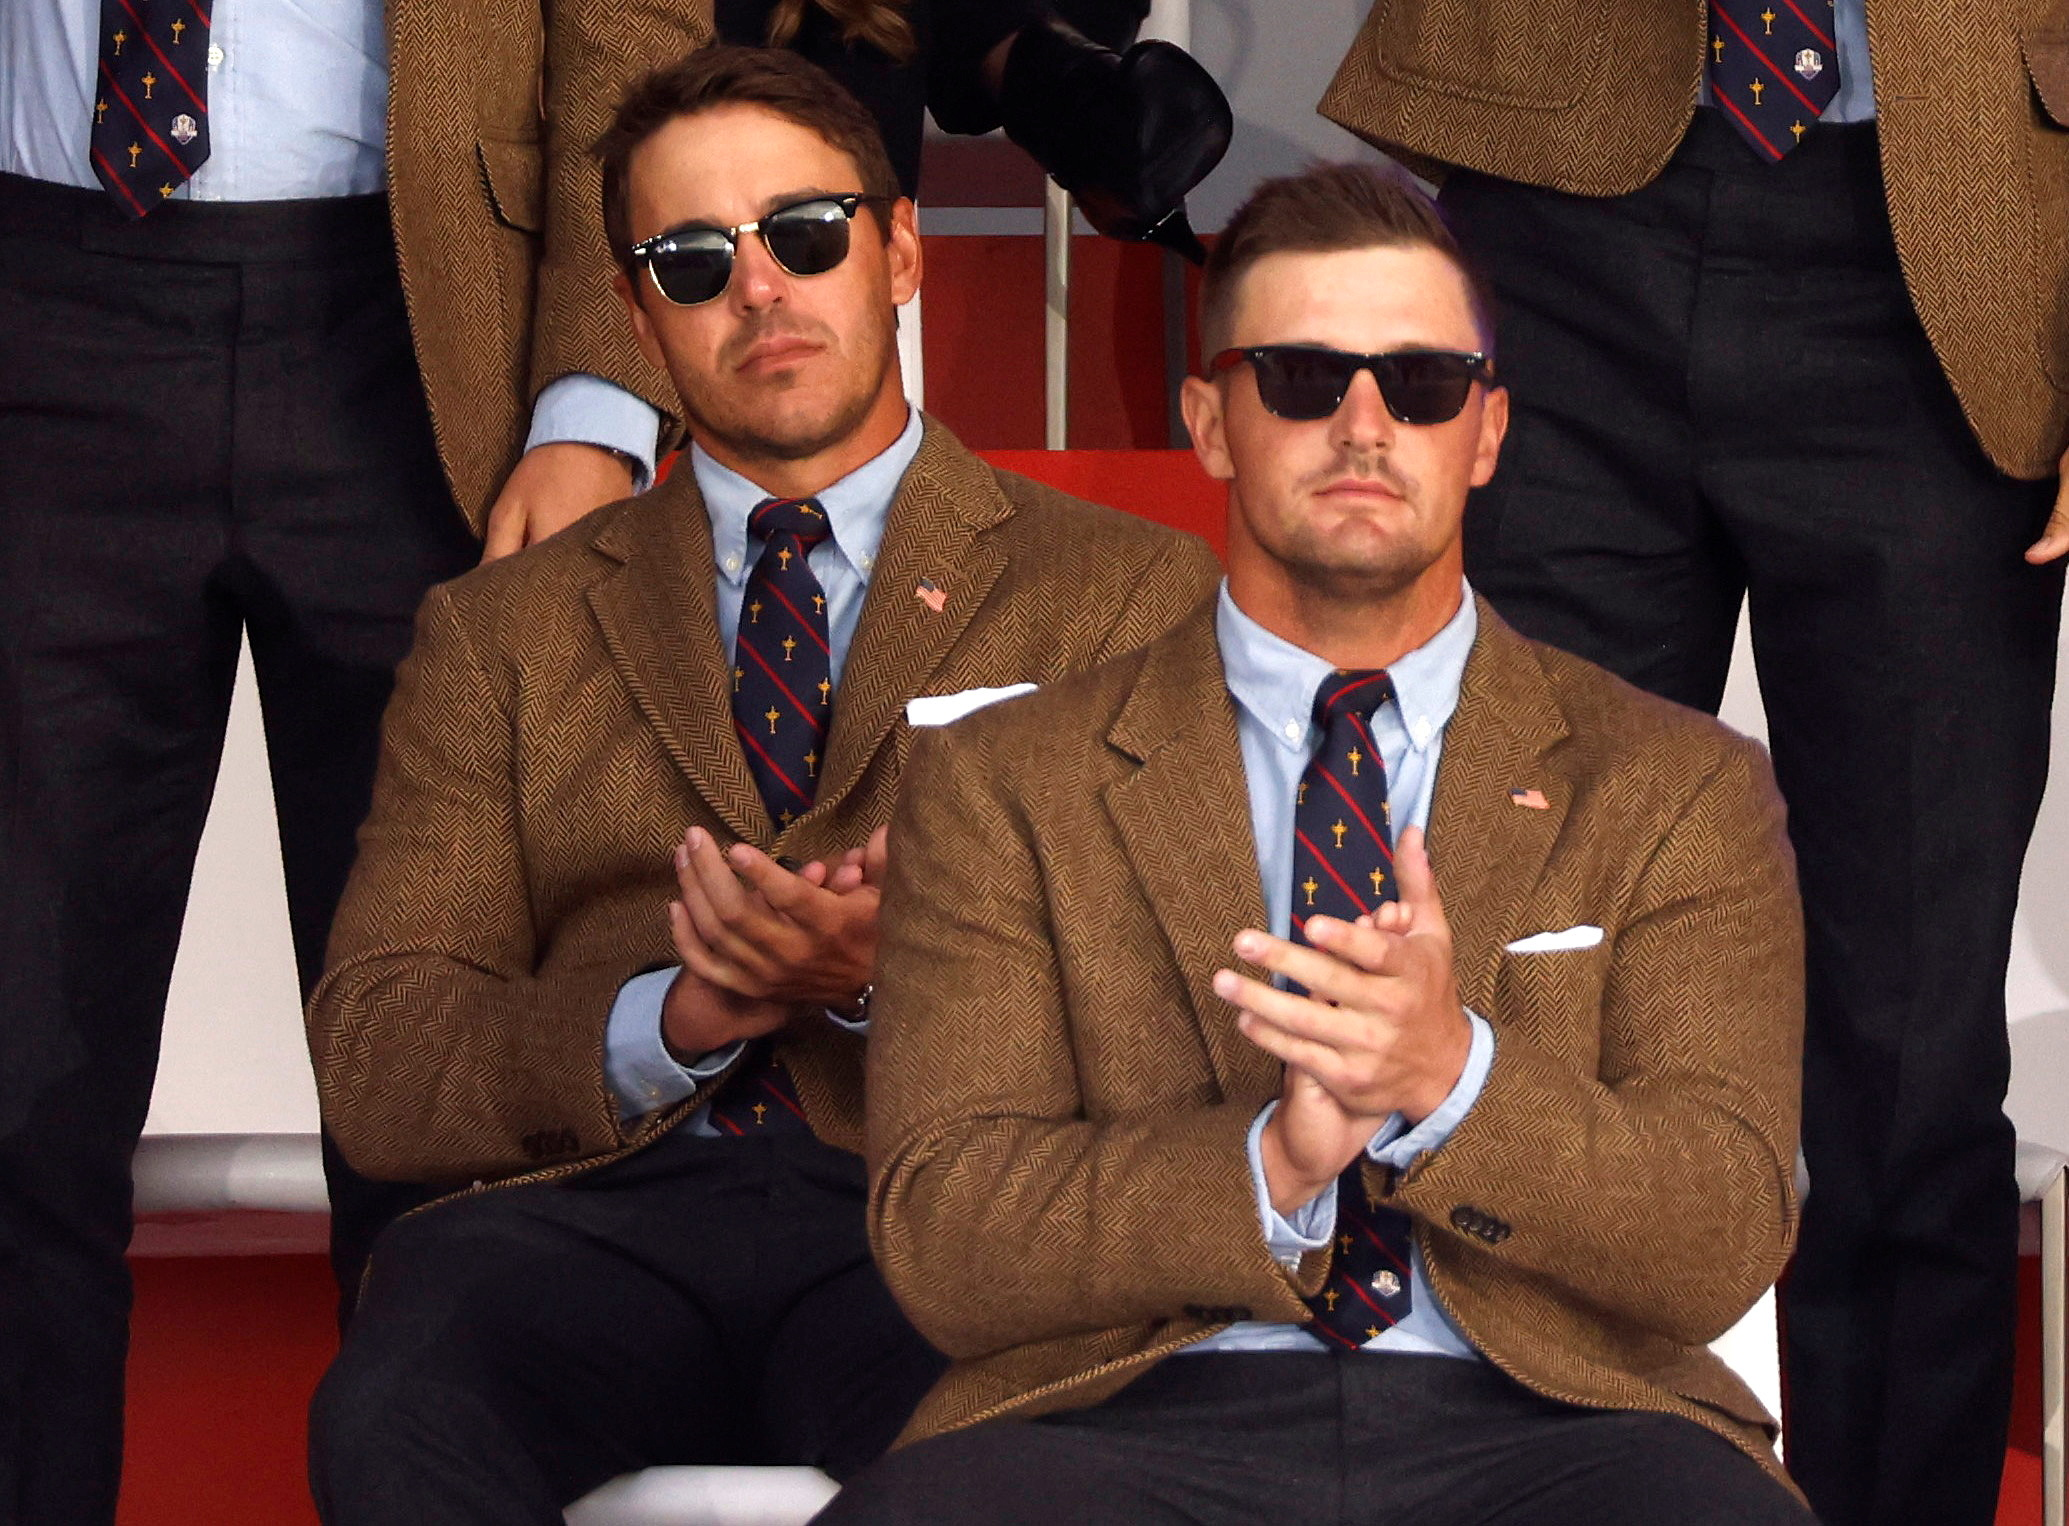 Golf - The 2020 Ryder Cup - Whistling Straits, Sheboygan, Wisconsin, U.S. - September 23, 2021 Team USA's Brooks Koepka and Team USA's Bryson DeChambeau during the opening ceremony REUTERS/Jonathan Ernst